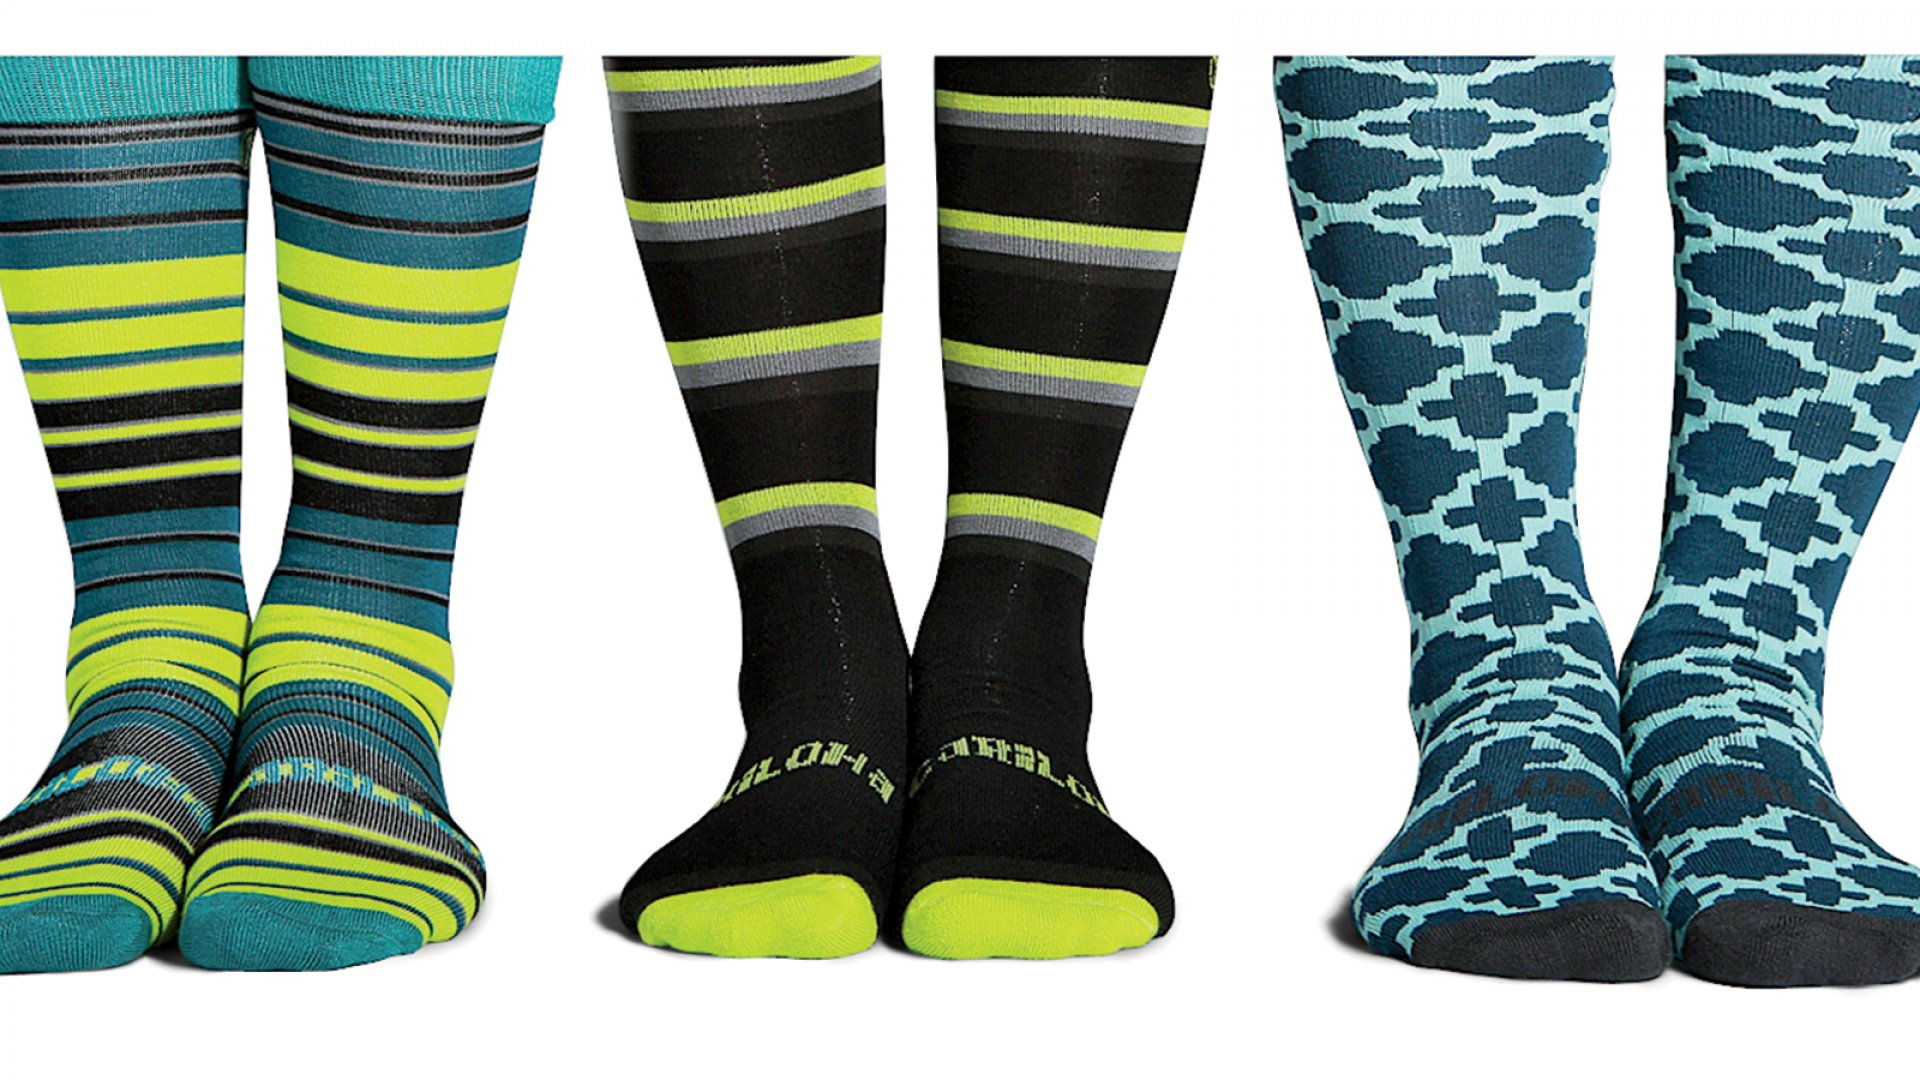 Cariloha employee preferences persuaded the company to expand its sock styles.